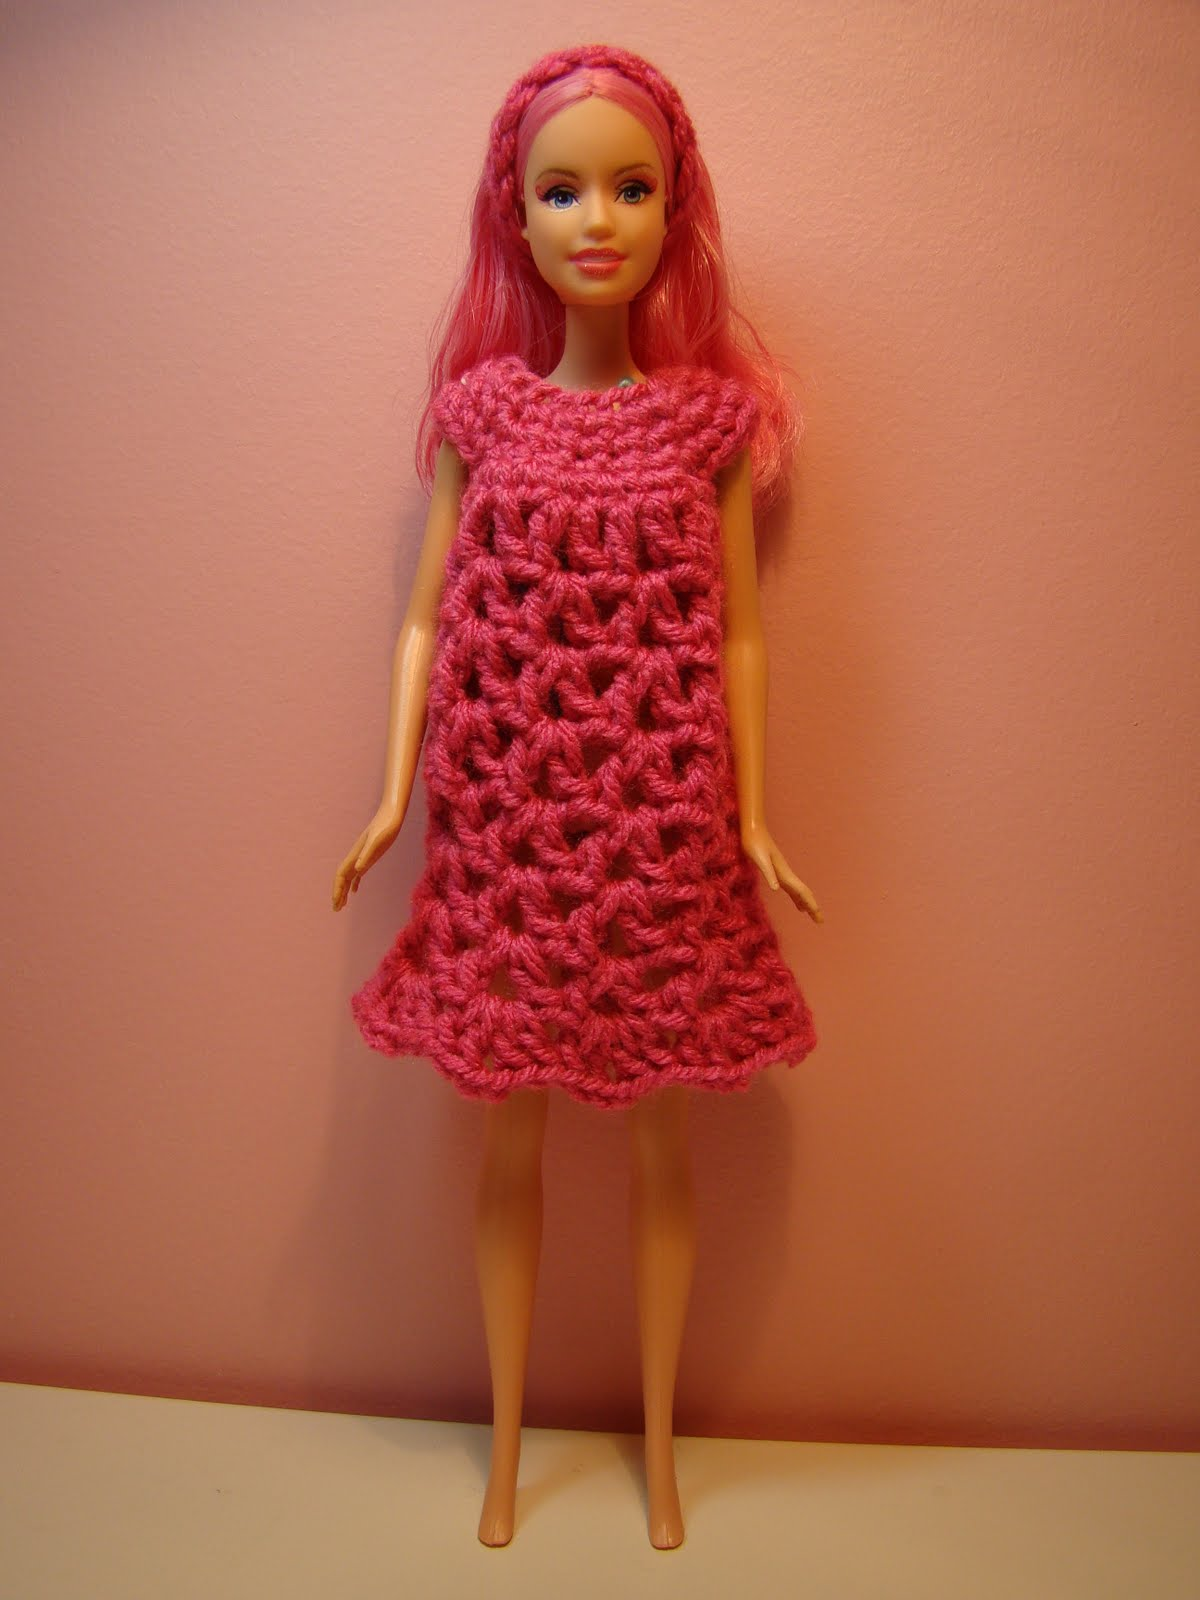 Crochet Barbie : Crochet Barbie Clothes